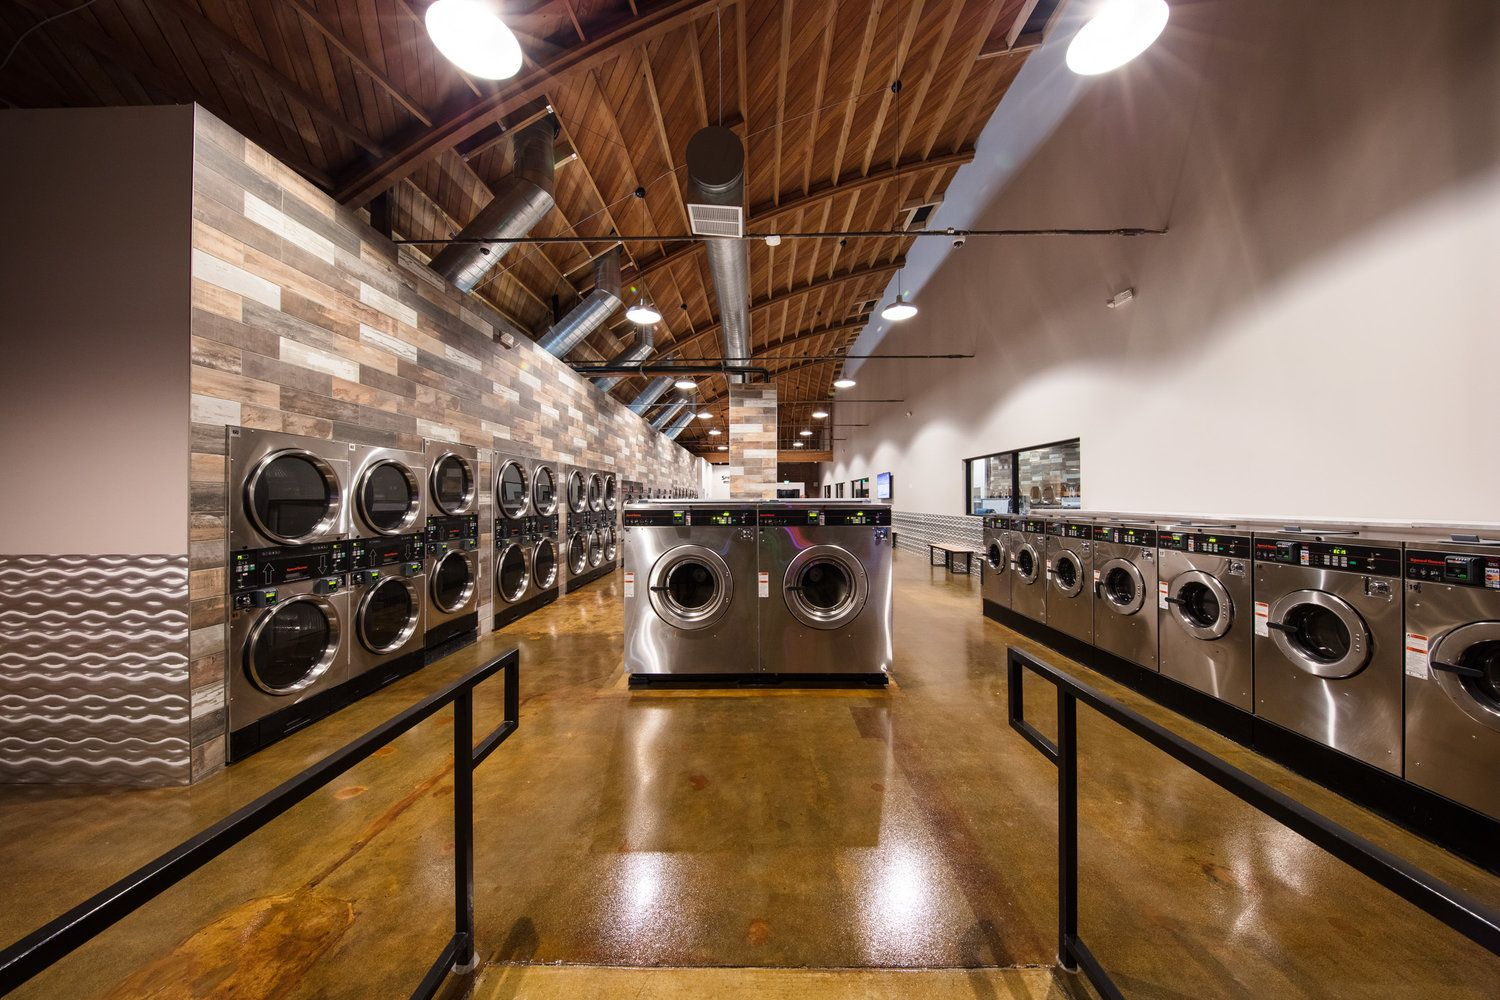 Pin By Mr T On Laundry In 2020 Laundry Shop Laundry Design